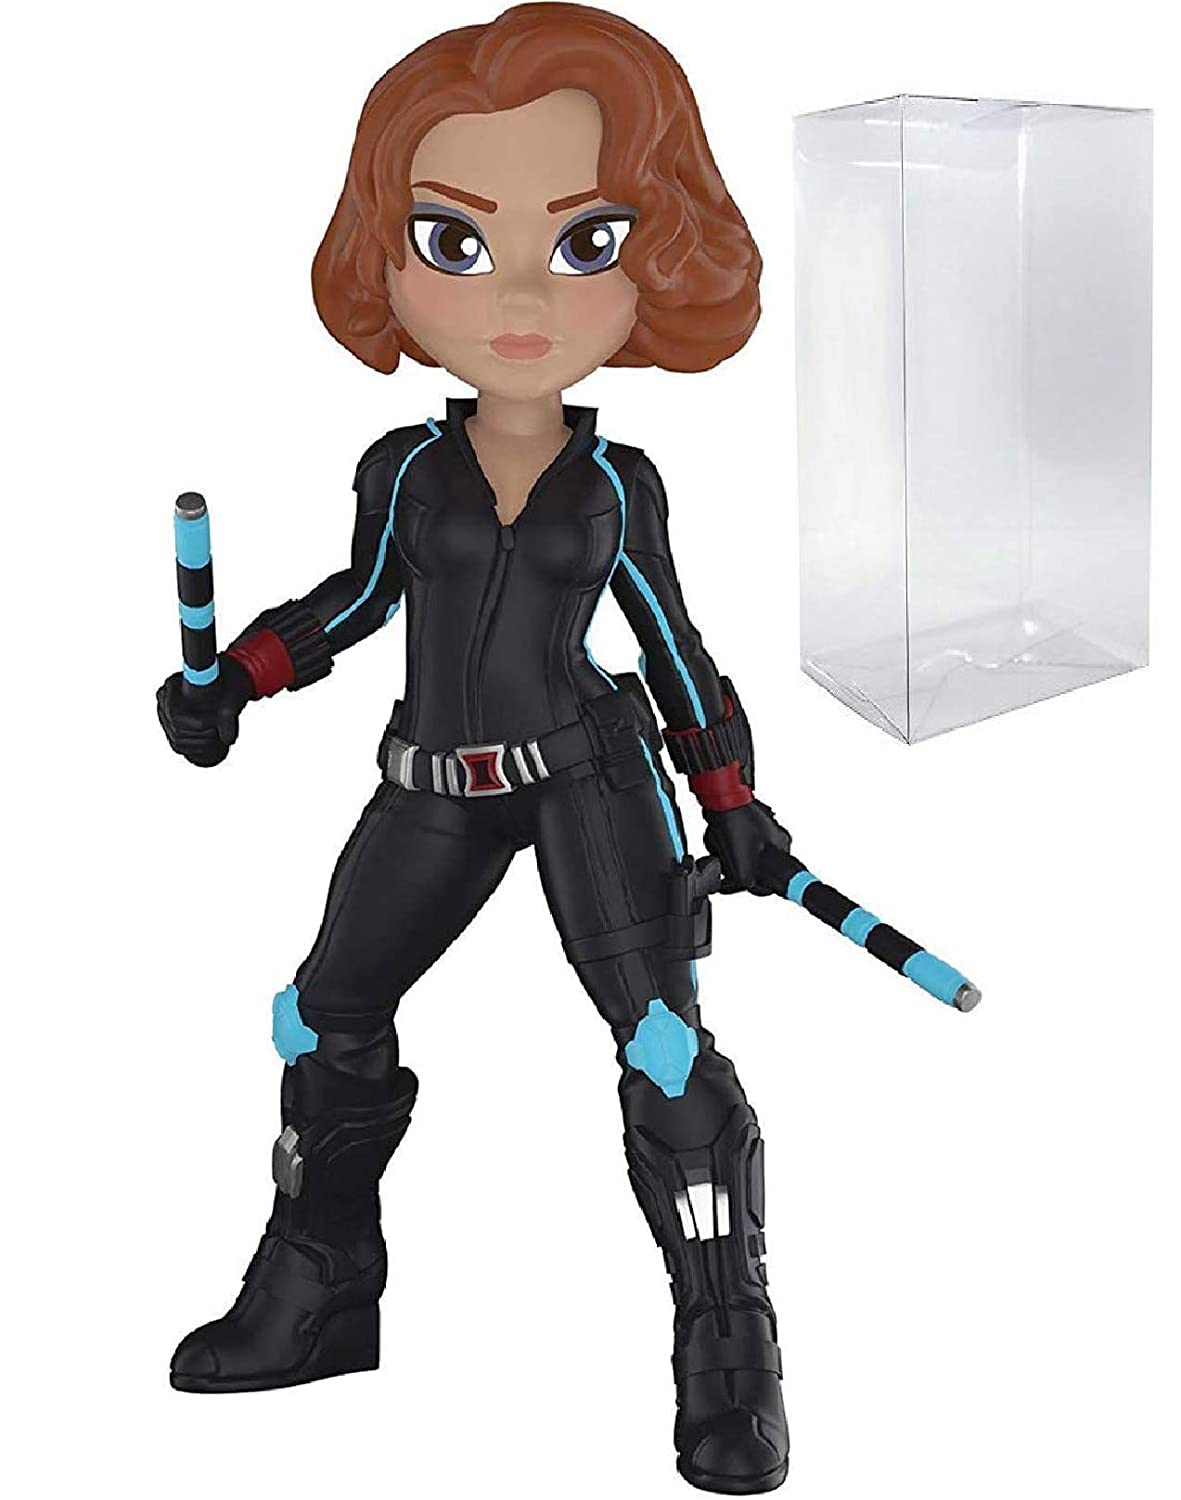 Amazon.com: Funko Rock Candy Marvel Studios 10 - Black Widow Vinyl Figure (Bundled with Pop Box Protector Case): Toys & Games